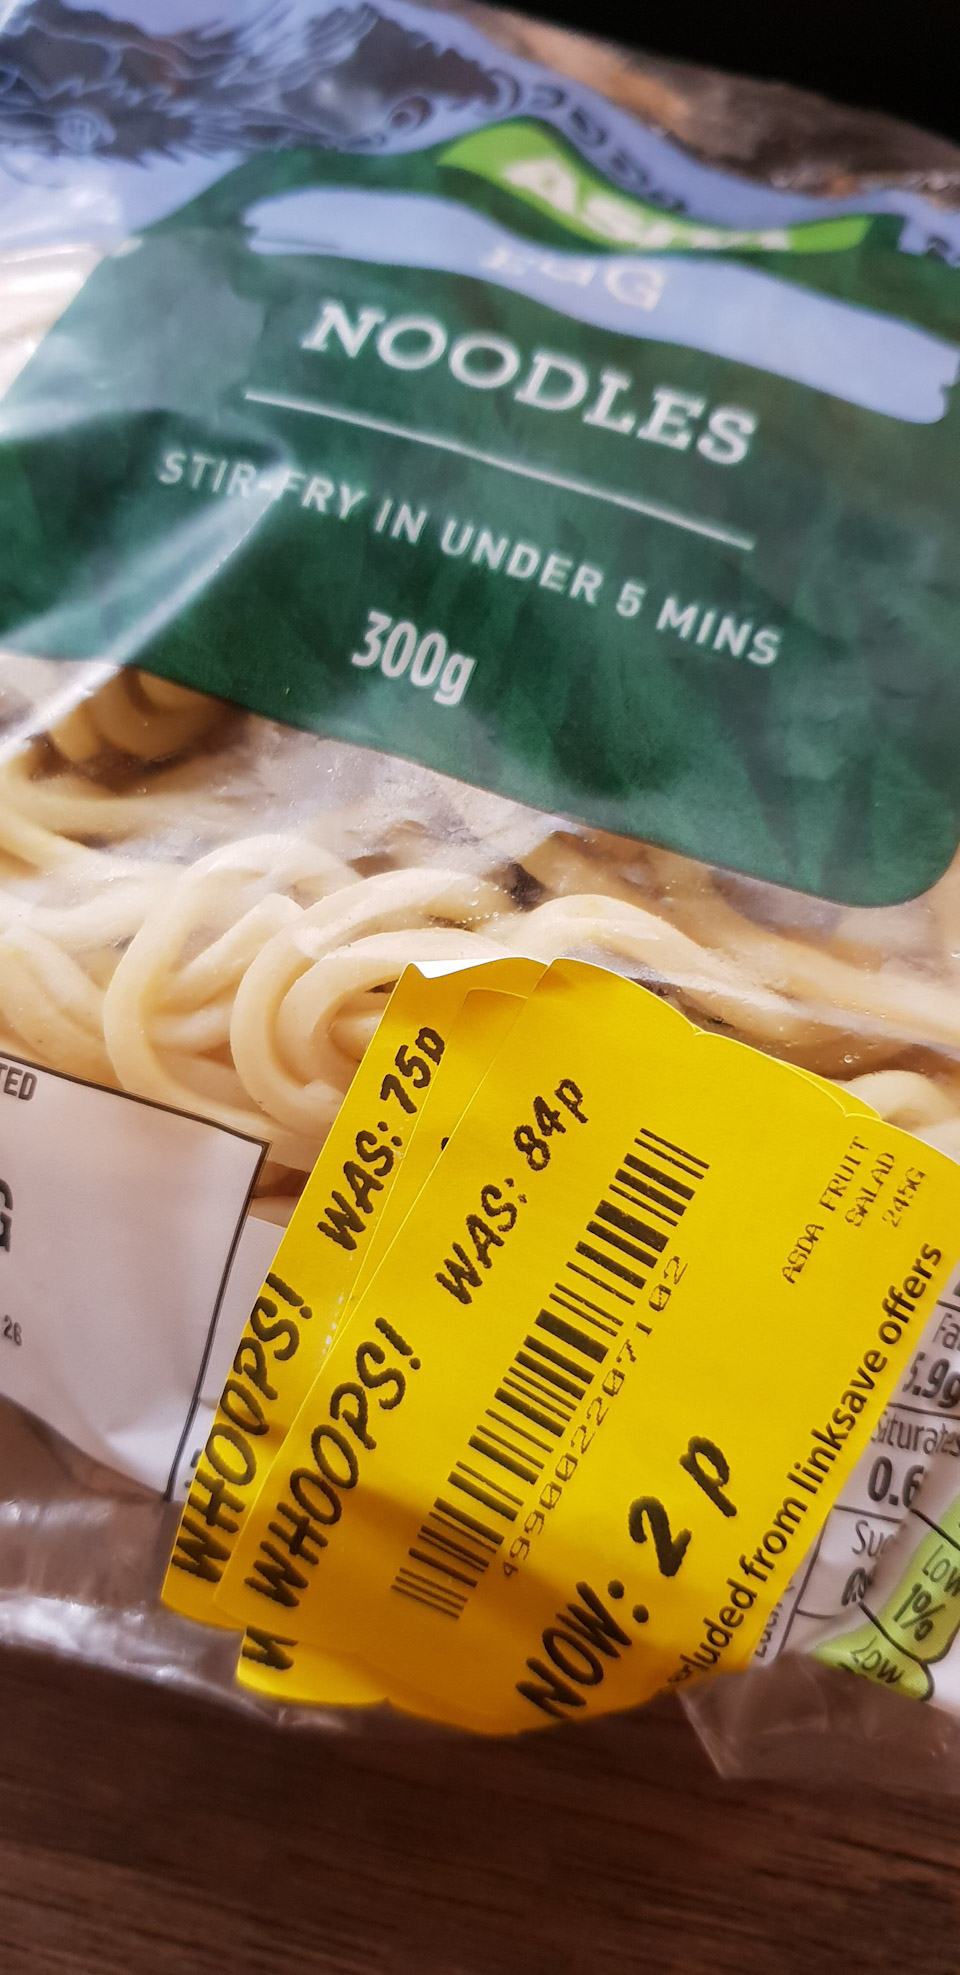 Egg Noodles 300g Reduced To Only 2p At Asda Kashyco